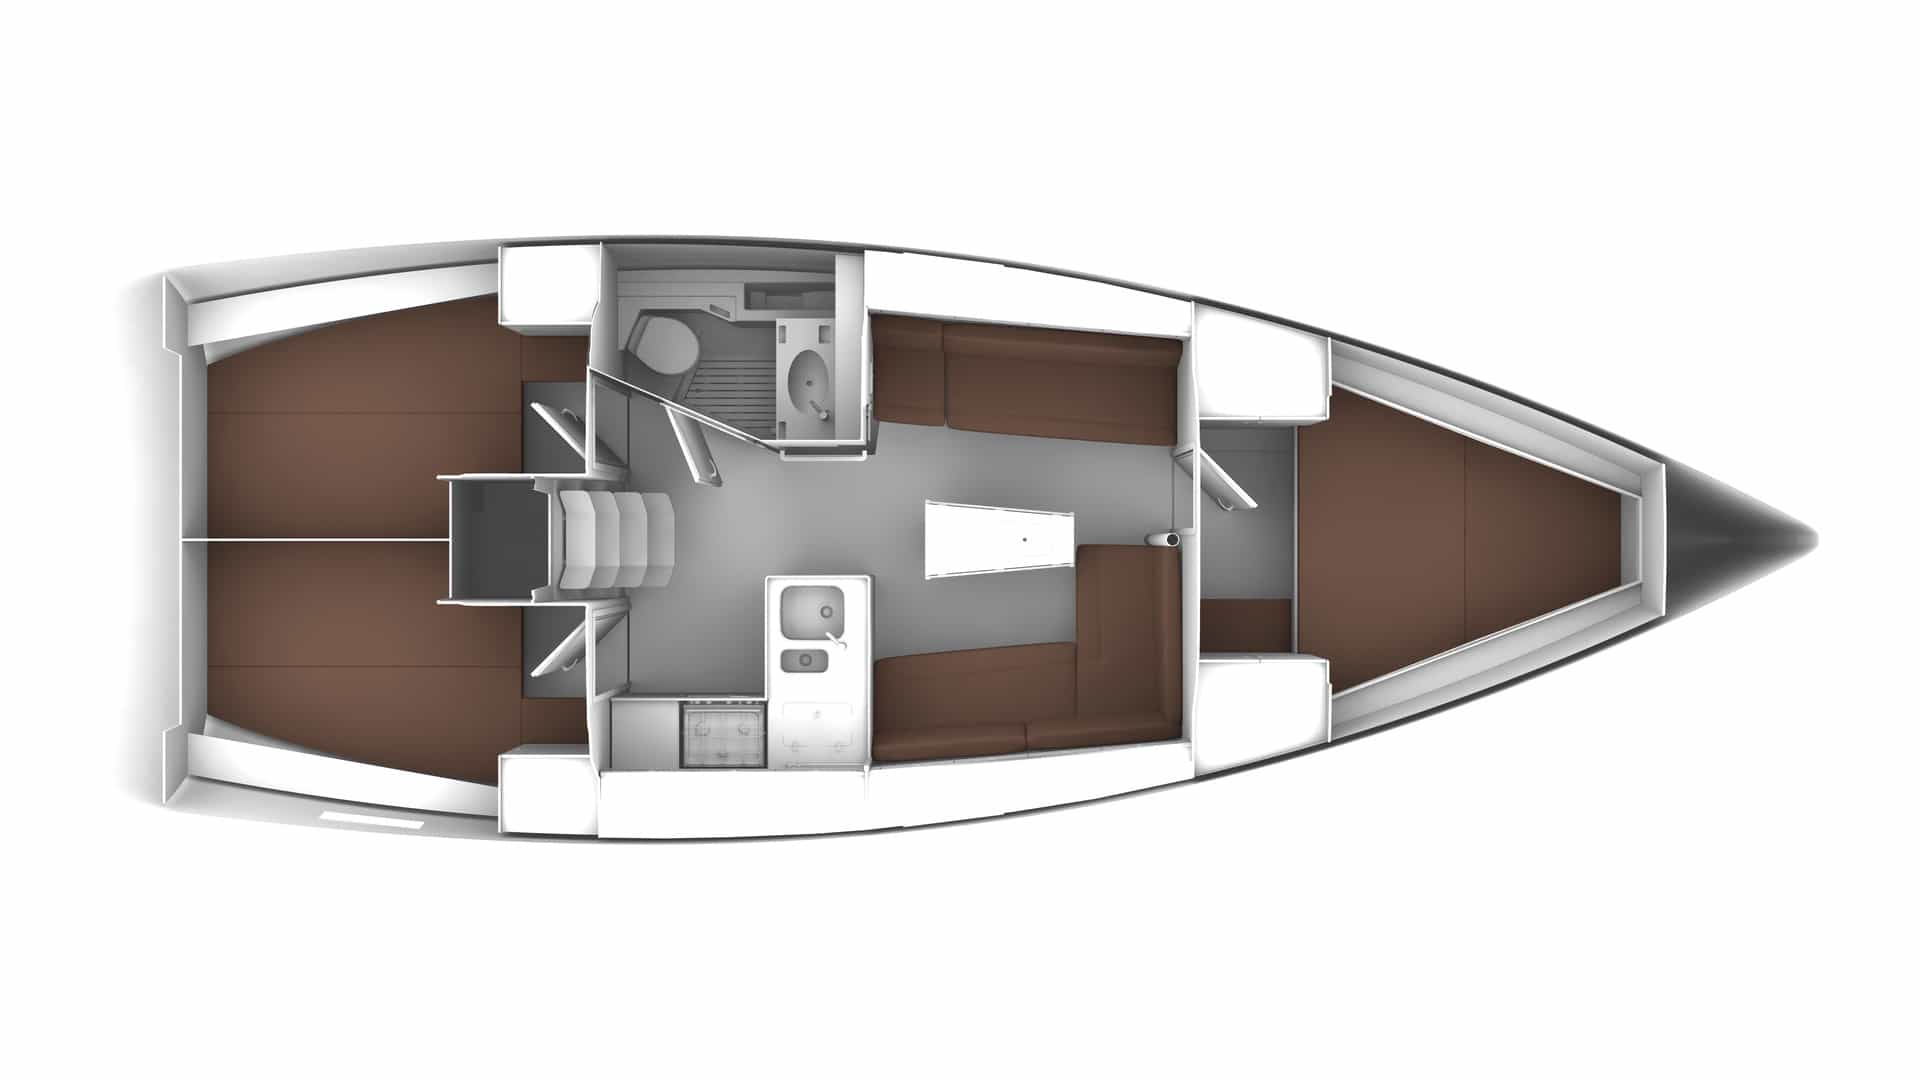 Bavaria Cruiser 37 layout